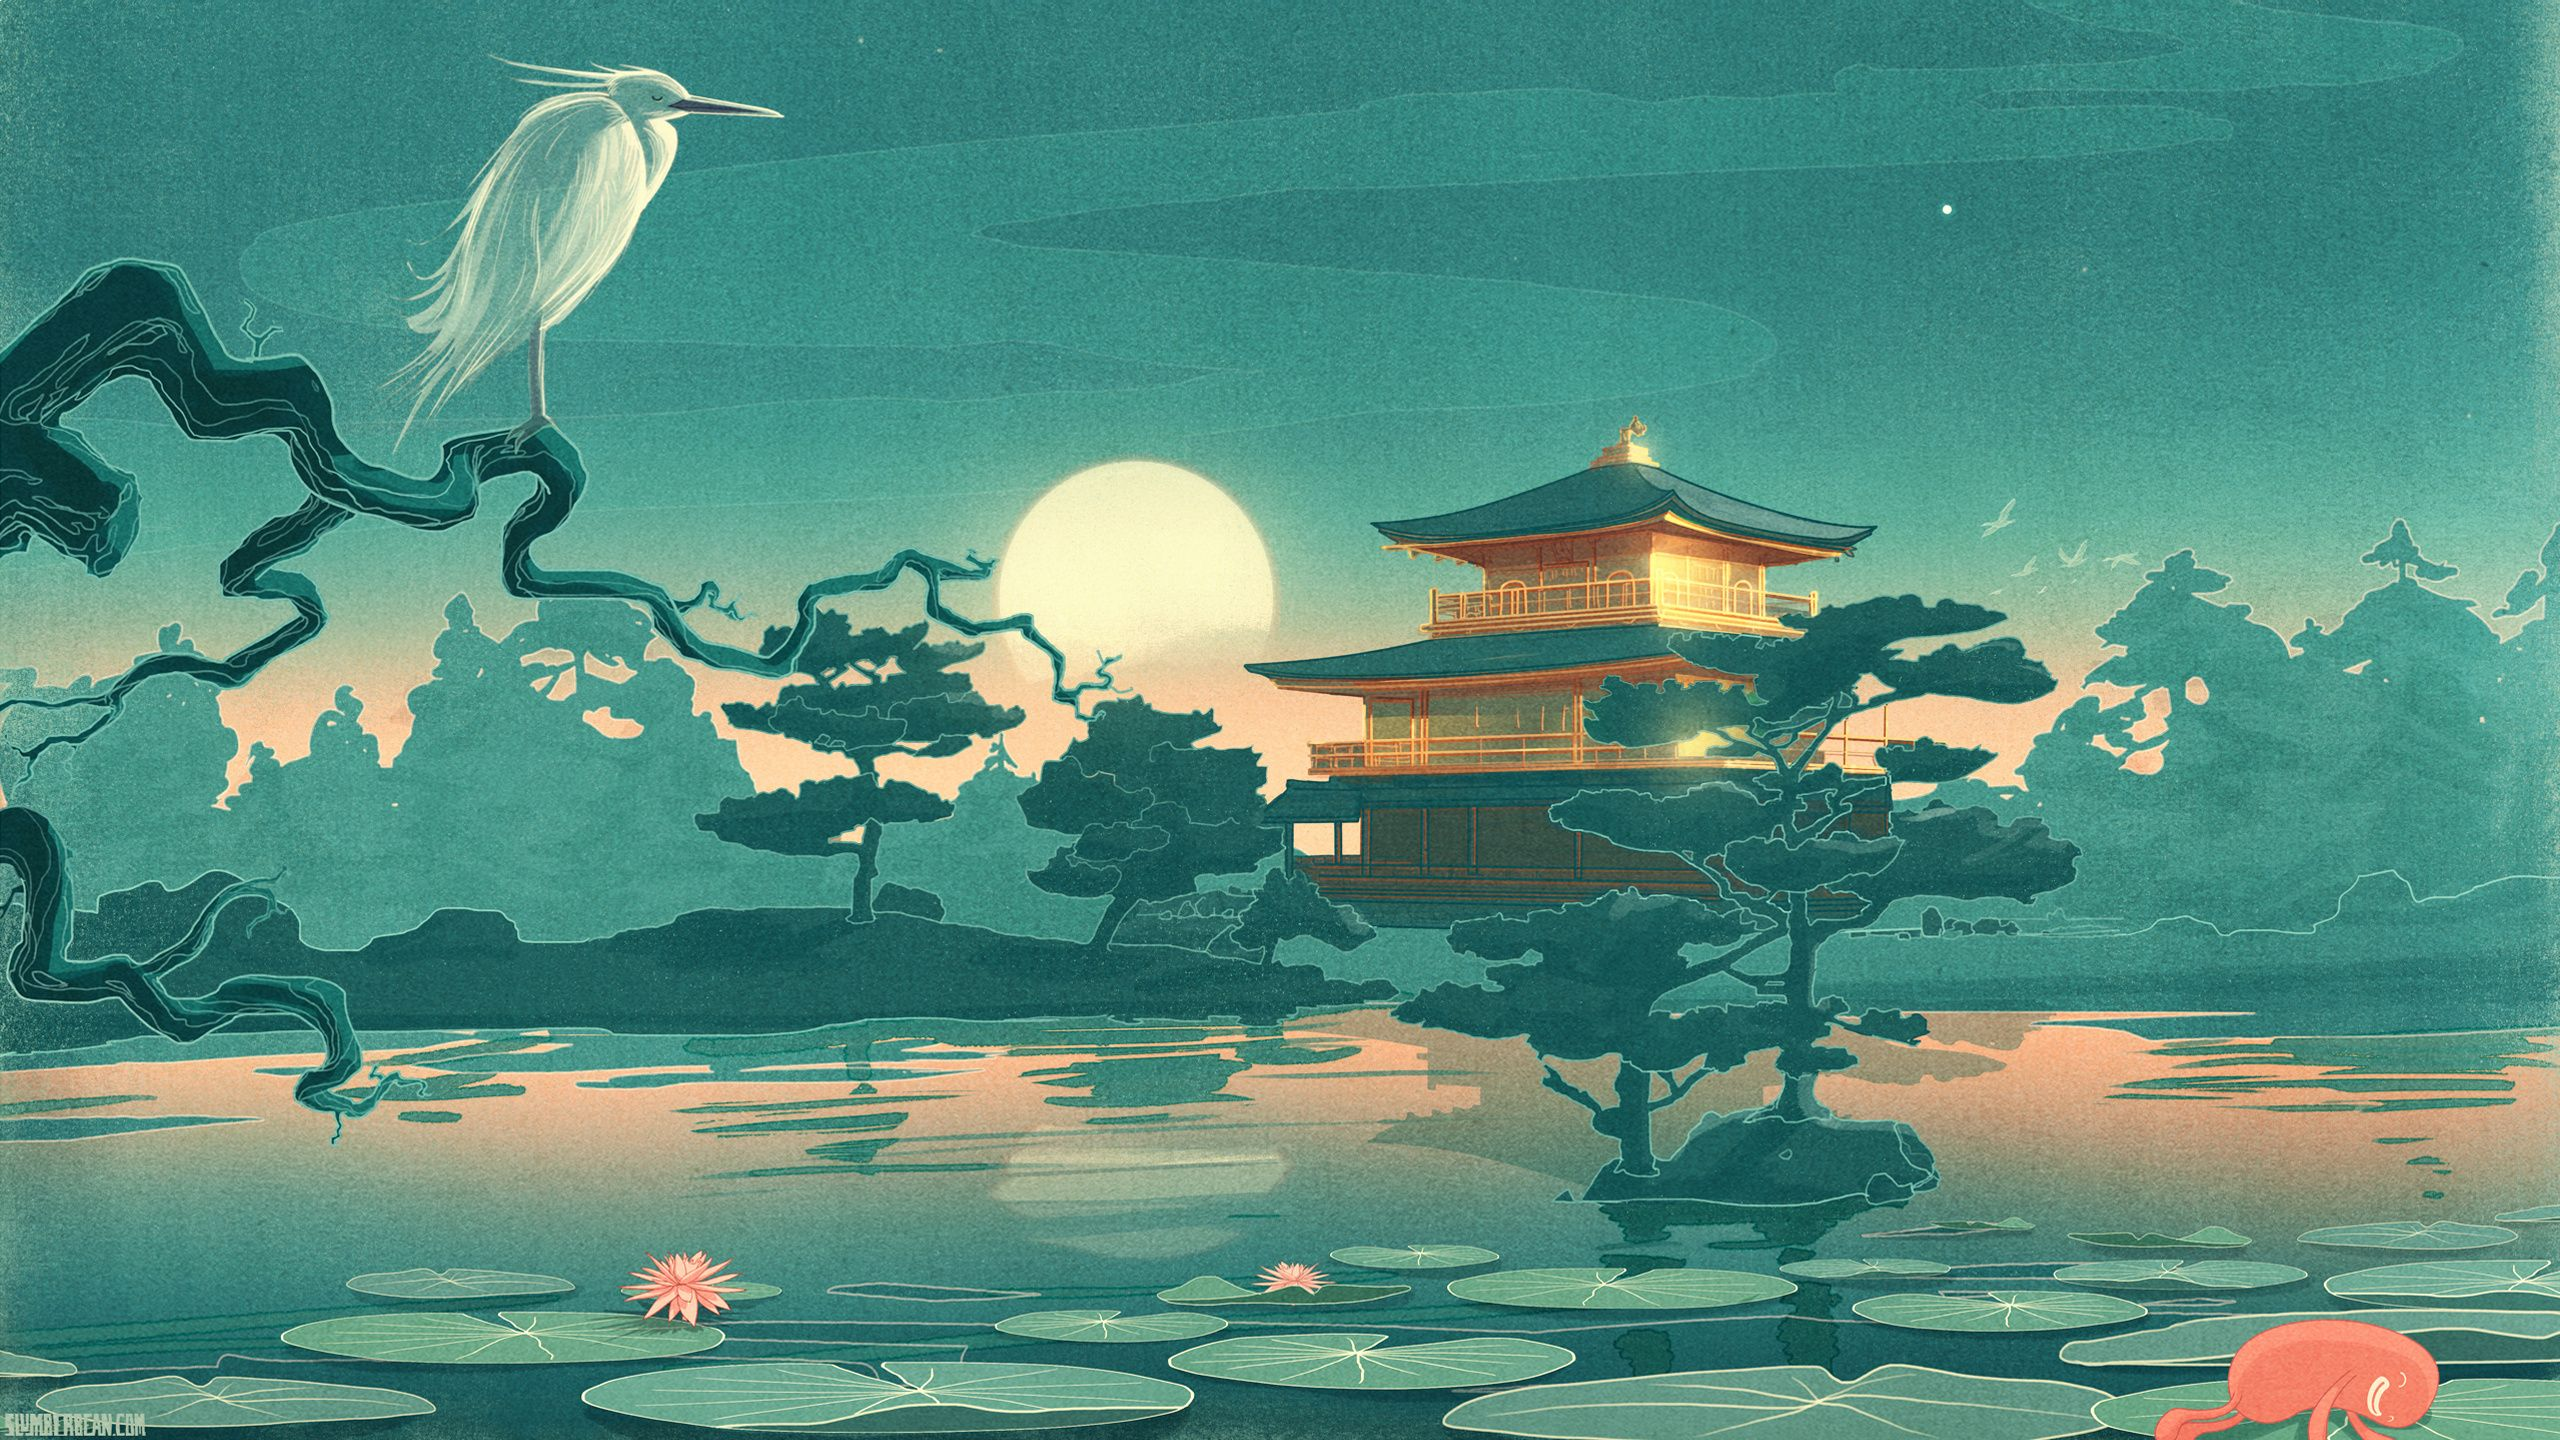 Hd Japanese Art Wallpaper Download Free 101424 Japanese Art Art Wallpaper Painting Wallpaper